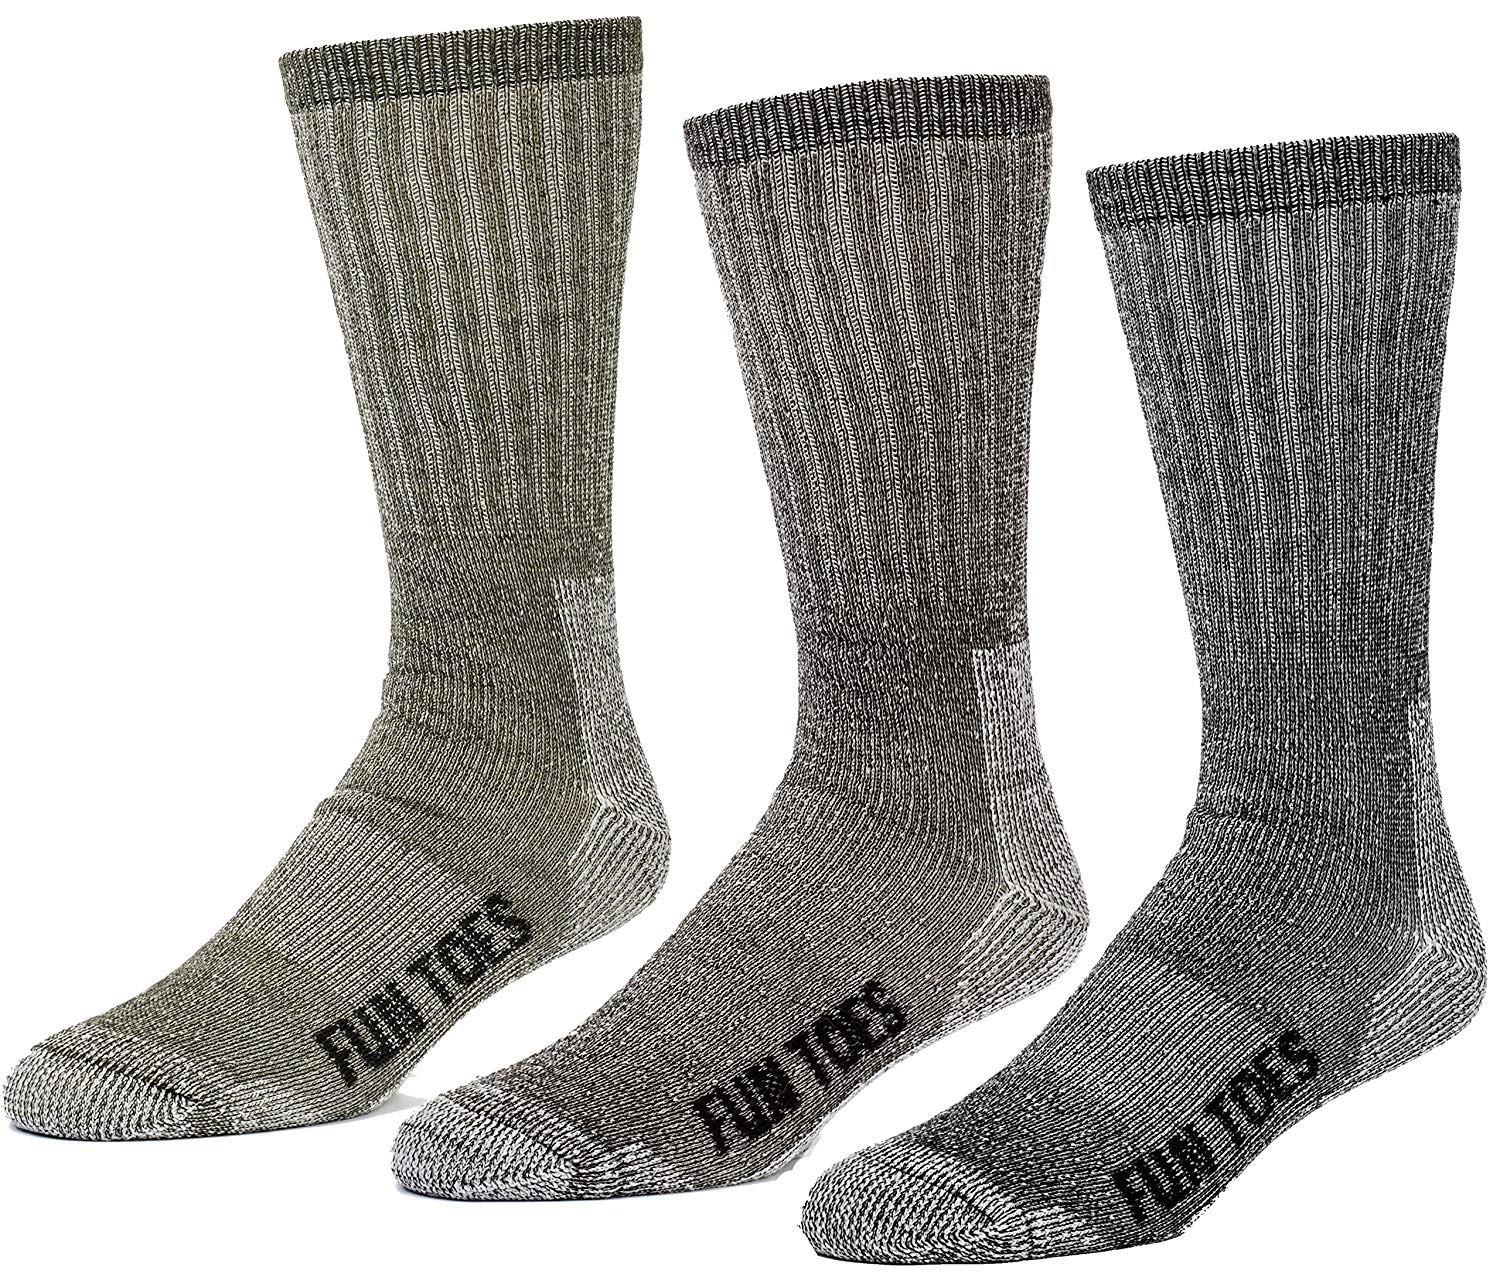 f83652a9a58b Get Quotations · FUN TOES 3 pairs thermal insulated 80% merino wool socks  men s